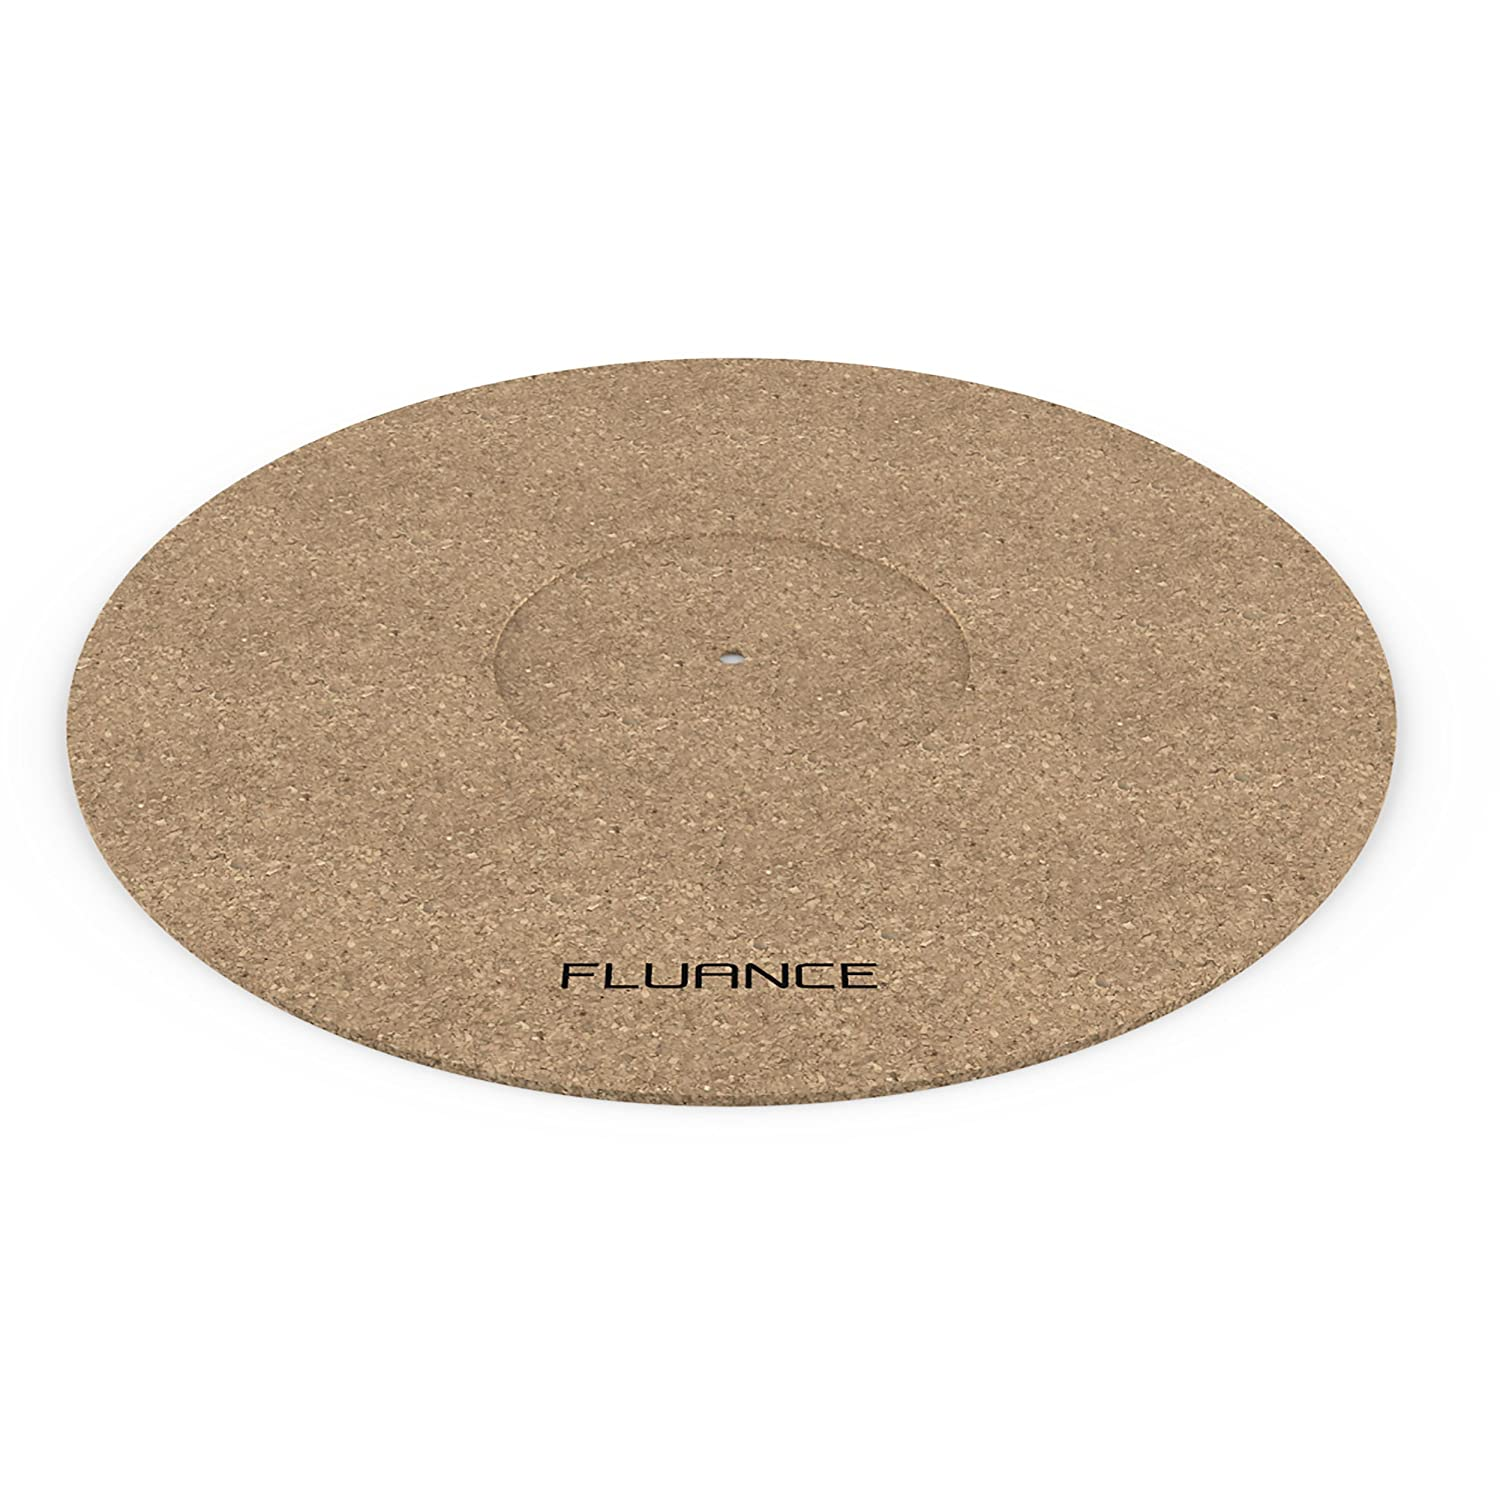 Fluance Turntable Cork Platter Mat - Audiophile Grade Improves Sound & Performance for Vinyl Record Players (TA21)